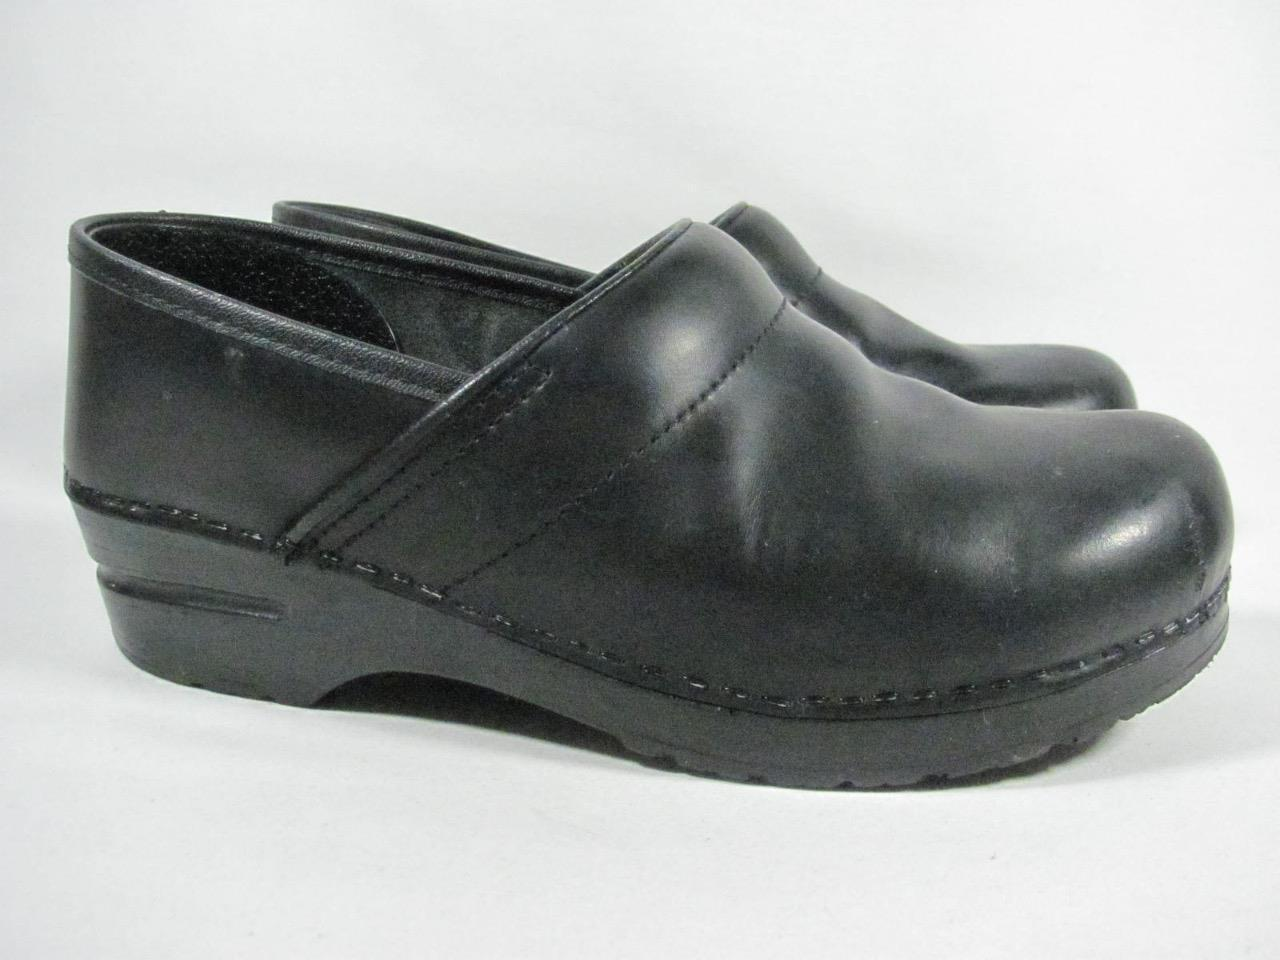 9be37bd0b97d3 Professional Clog Women size US 10.5-11 Black 41 Dansko nsmxgg4394 ...